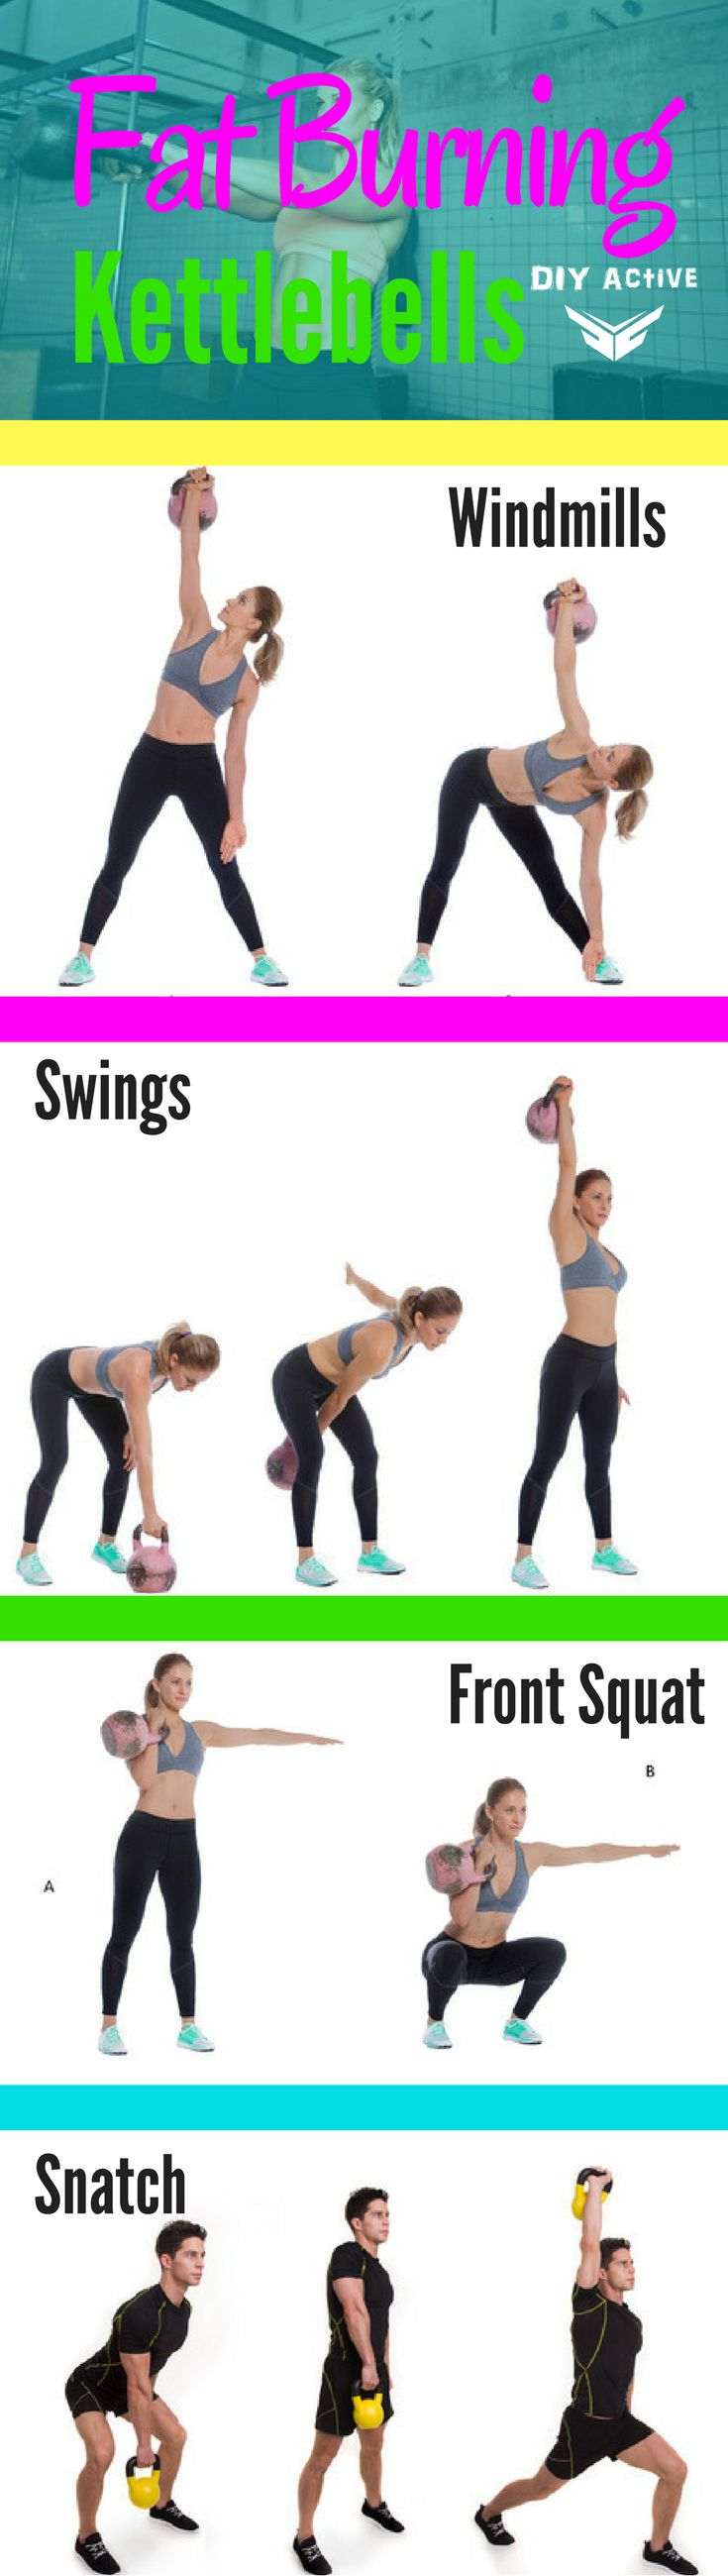 Improve Your Strength With This Kettlebell Workout via @DIYActiveHQ #kettlebelll #workout